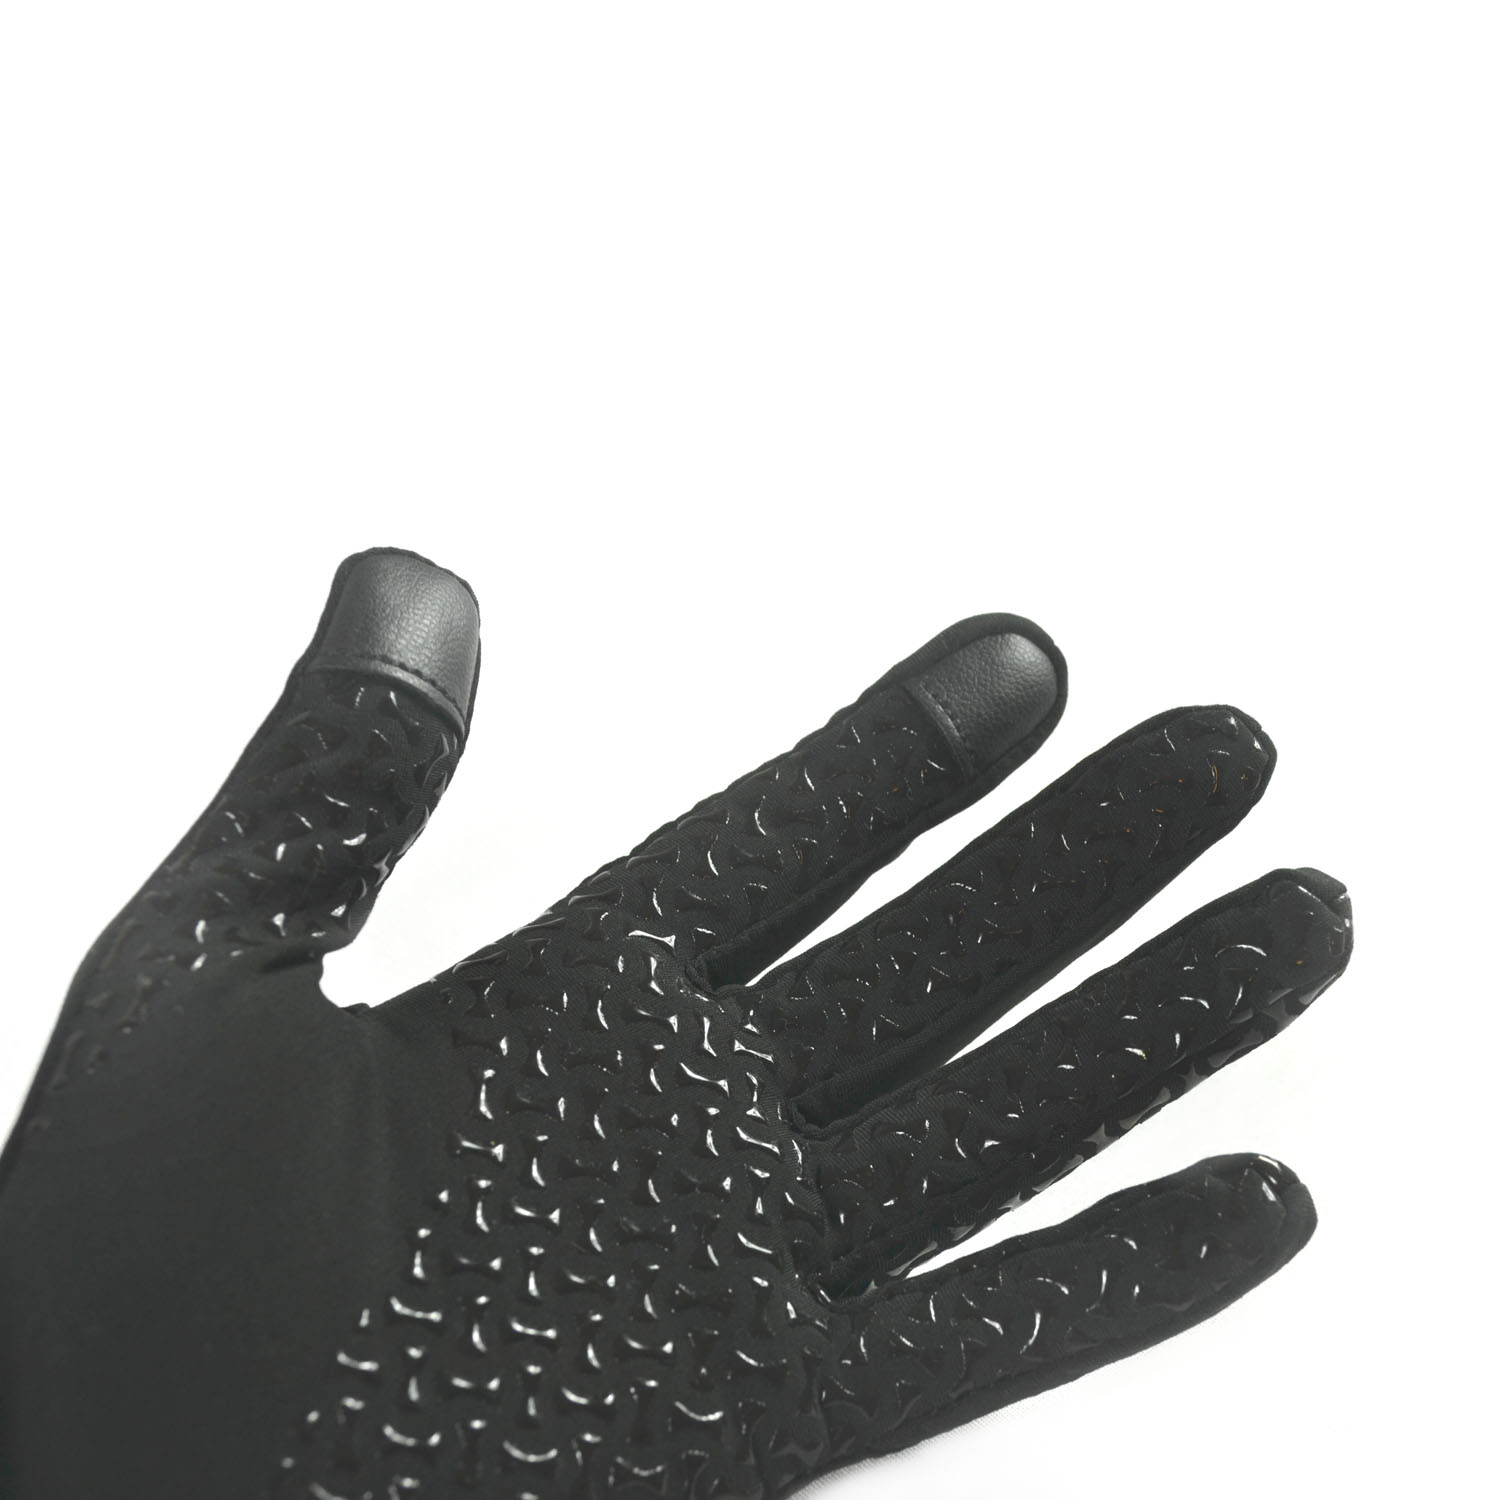 Lite-Contact Riding Gloves